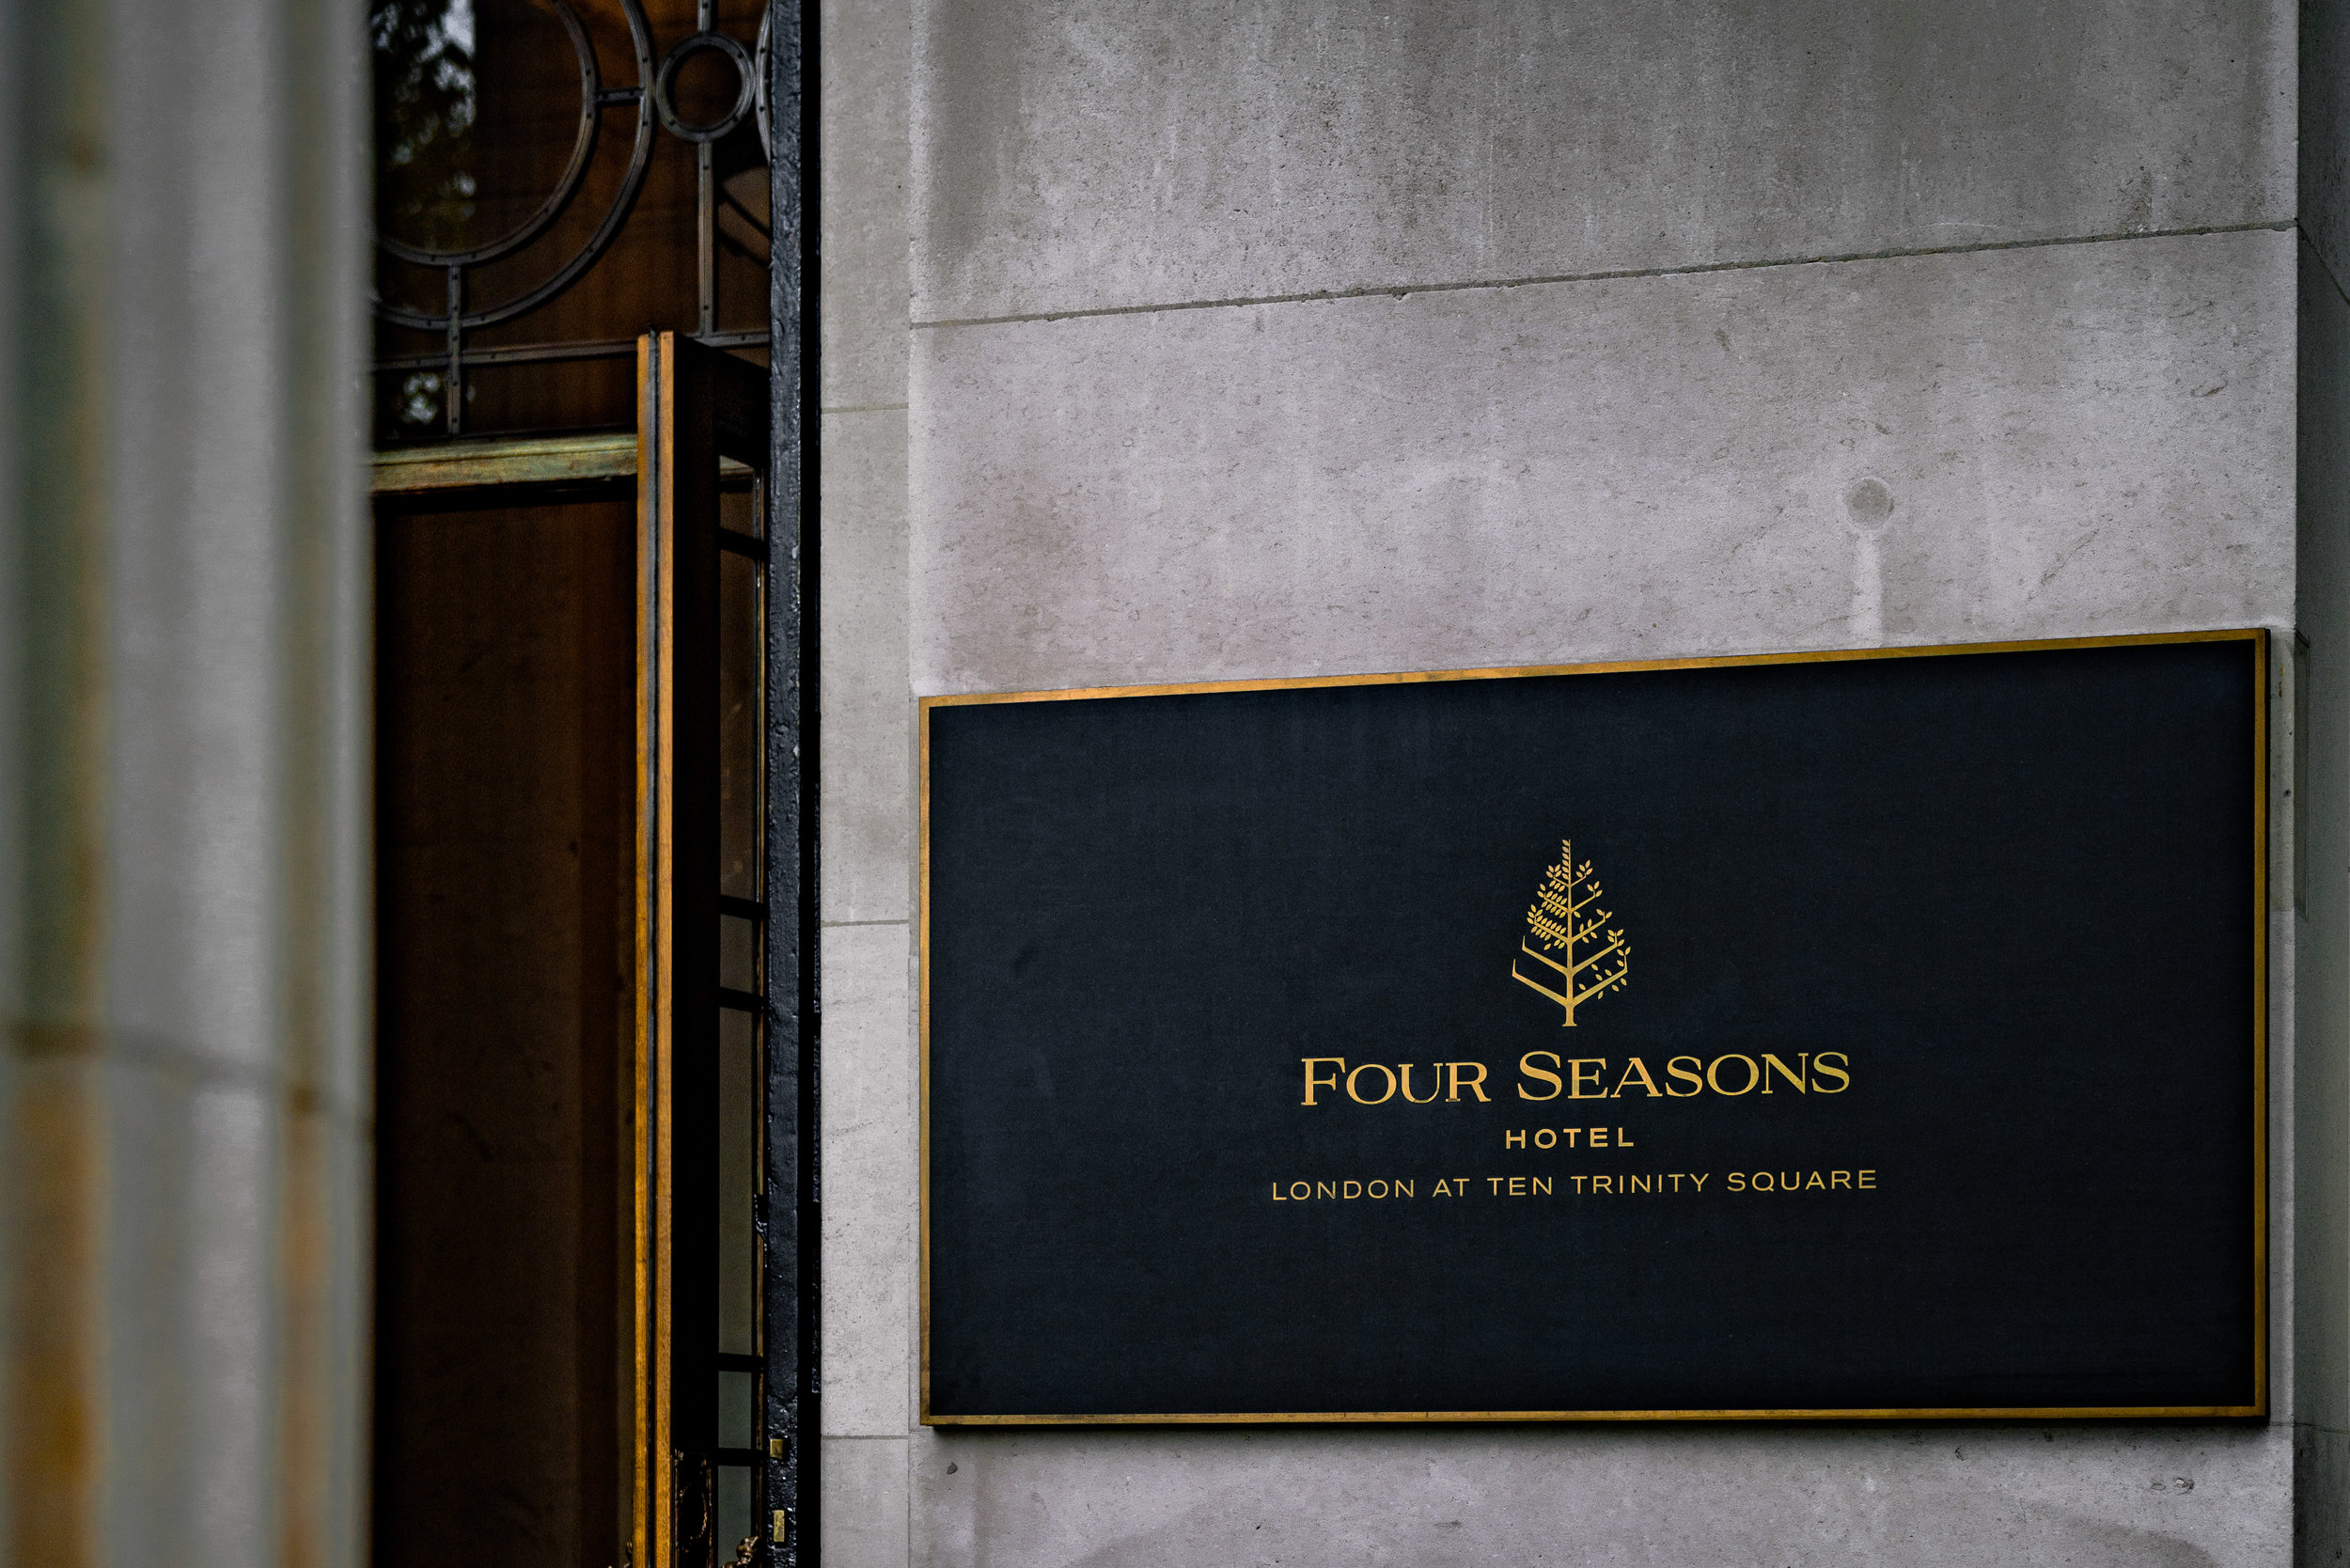 Four Seasons Hotel, Ten Trinity Square